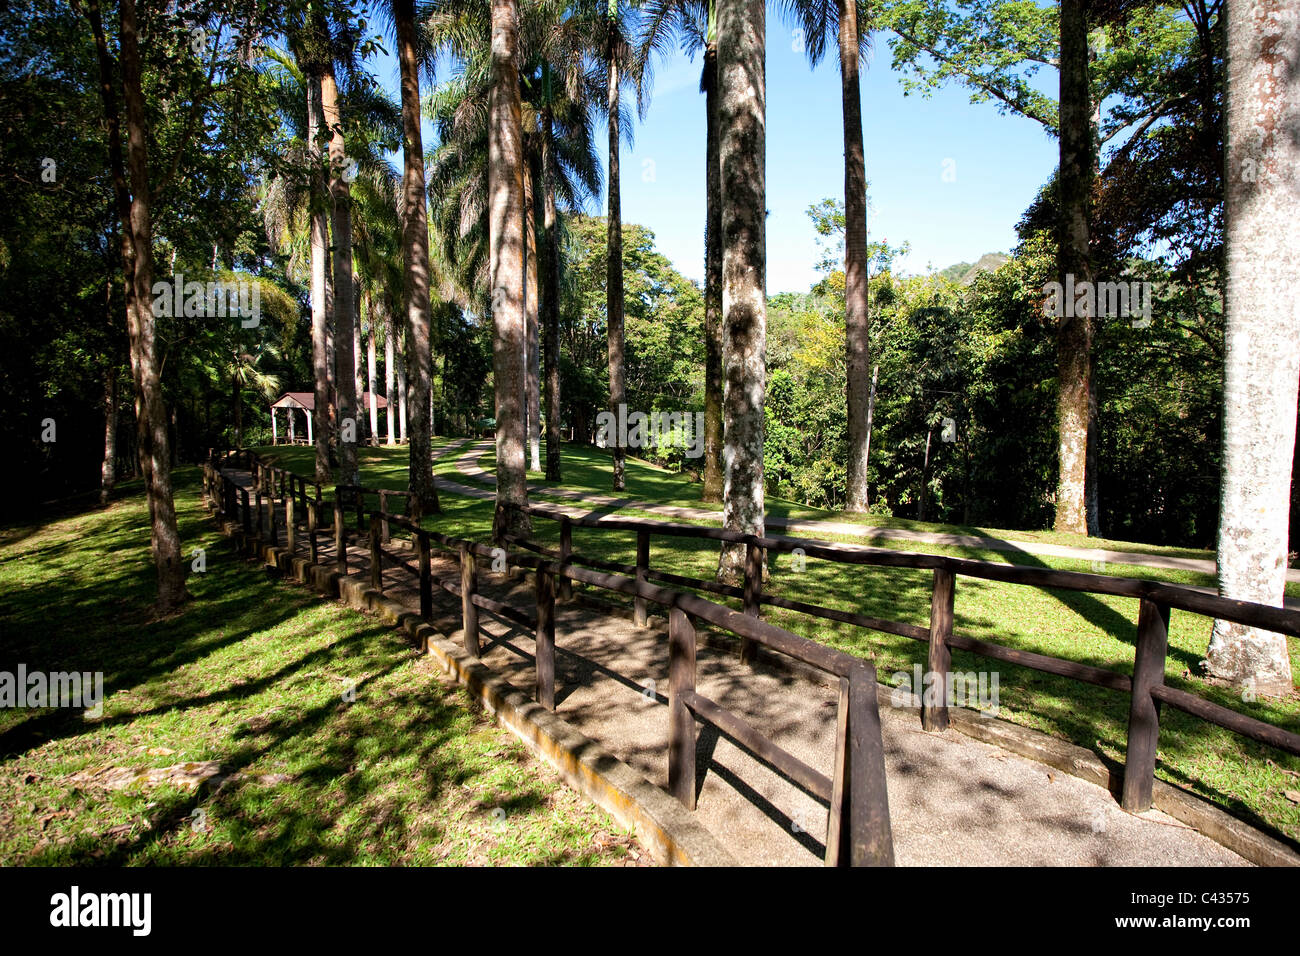 Usa, Caribbean, Puerto Rico, Central Mountains, Parque Ceremonial Indigena Caguana (Taino Ceremonial Site) - Stock Image